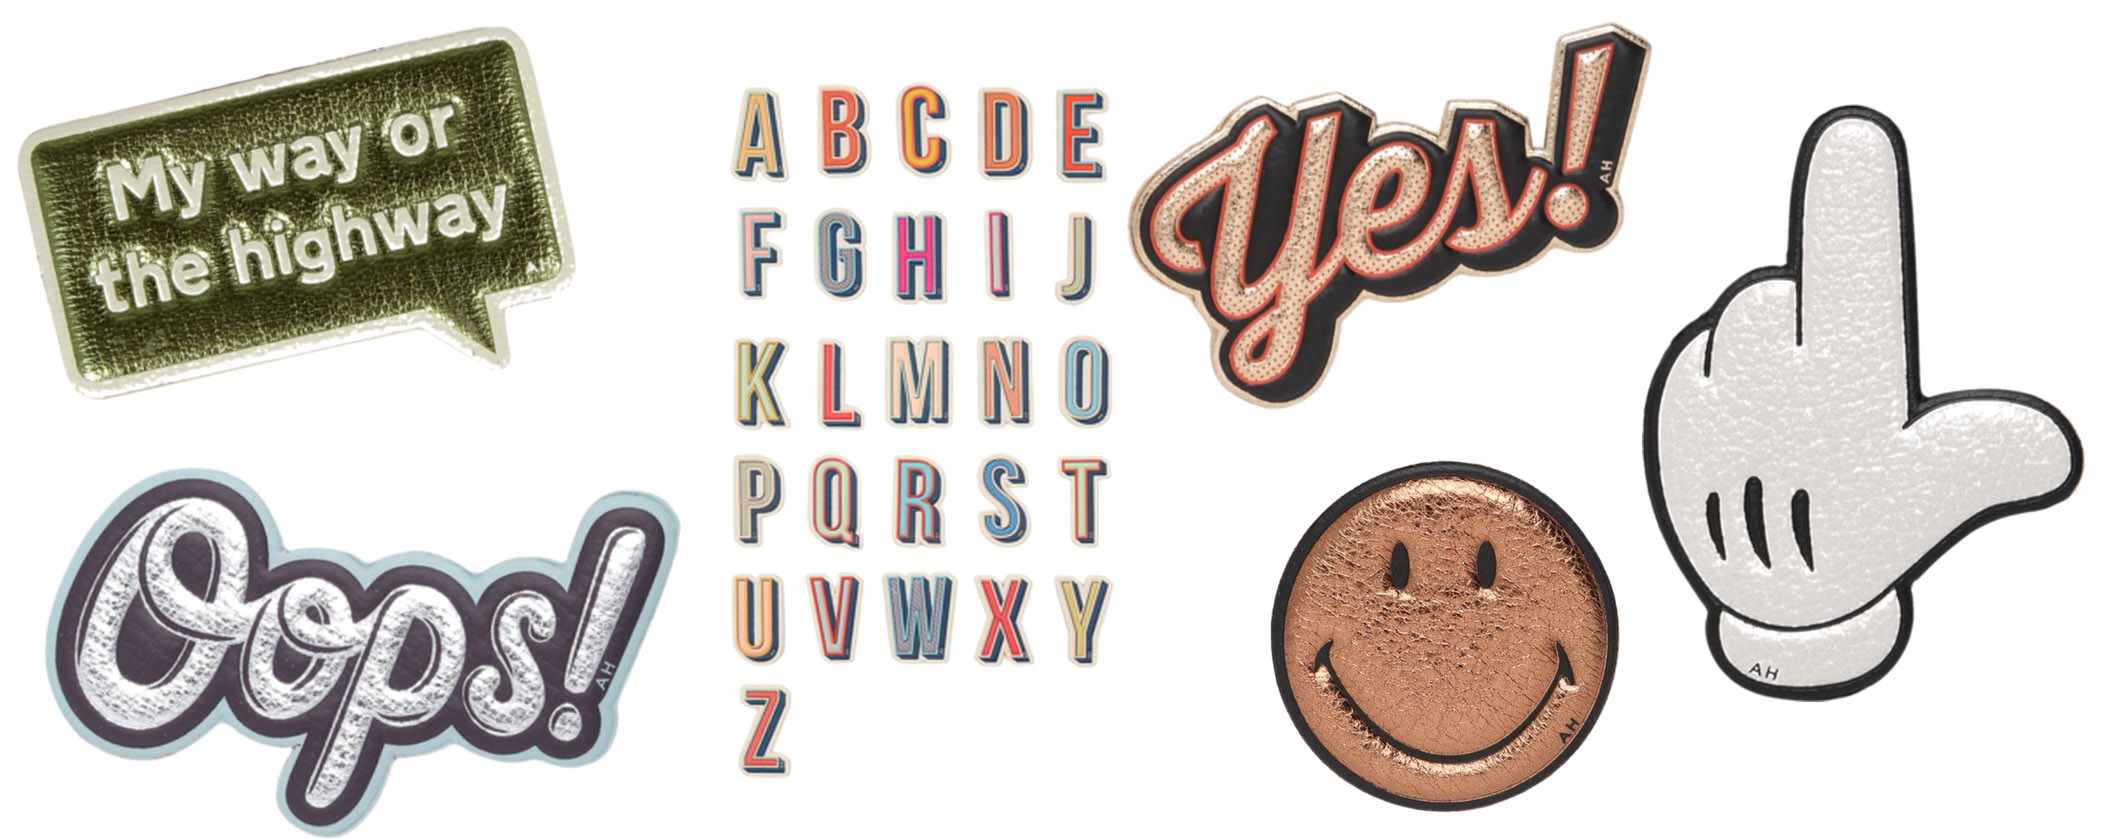 Stickers by Anya Hindmarch